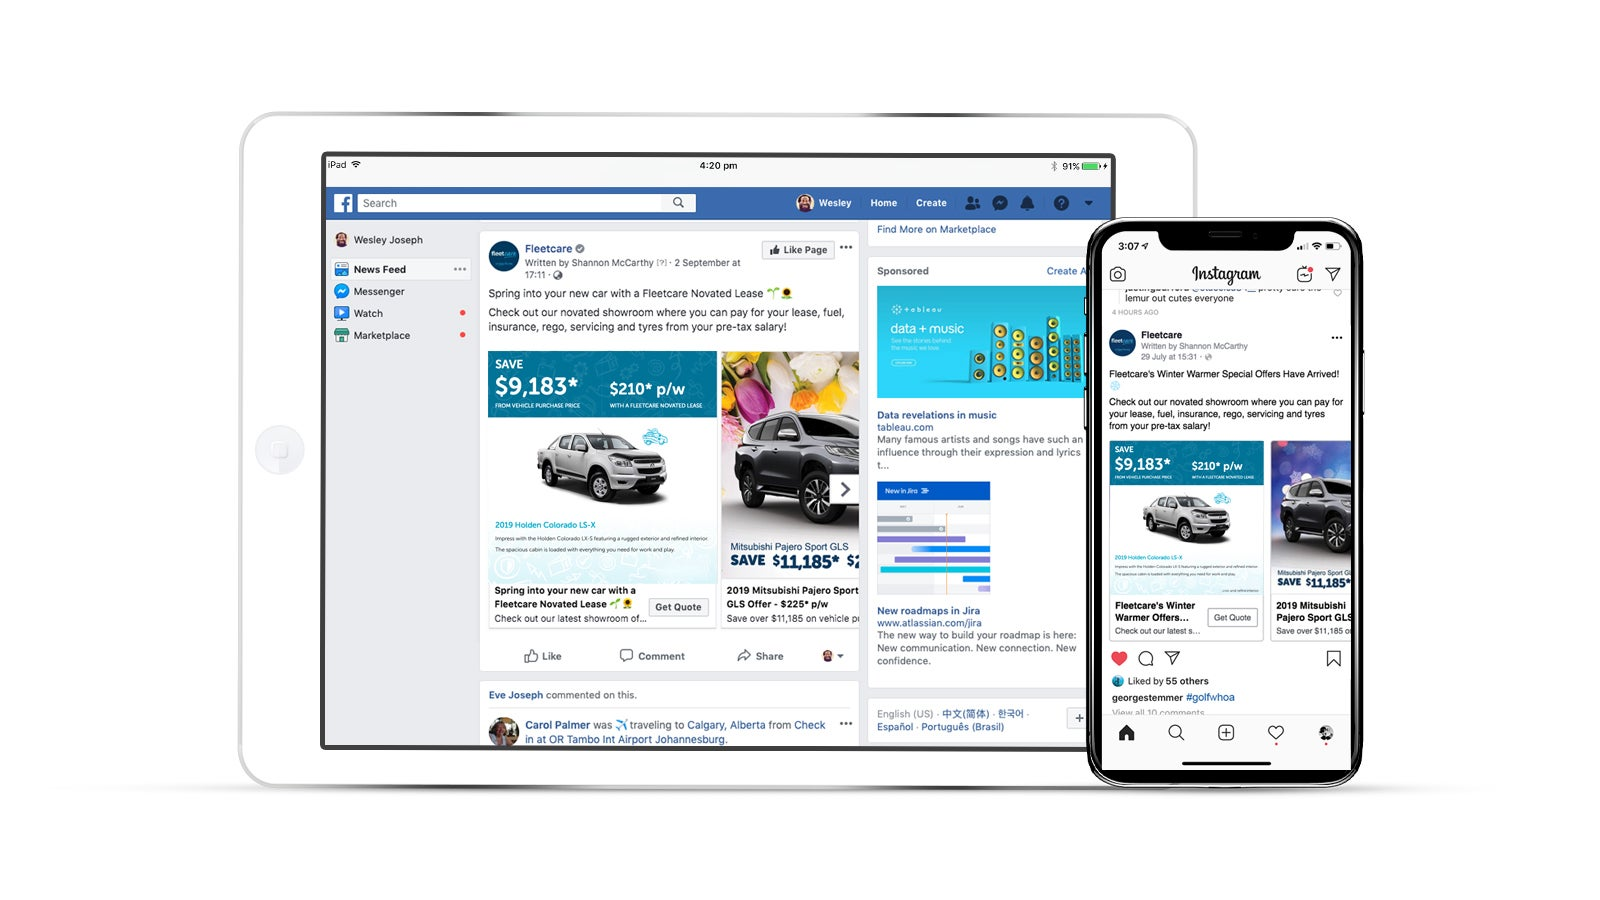 Fleetcare | Fleetcare social media pages on laptop and smartphone | Devotion